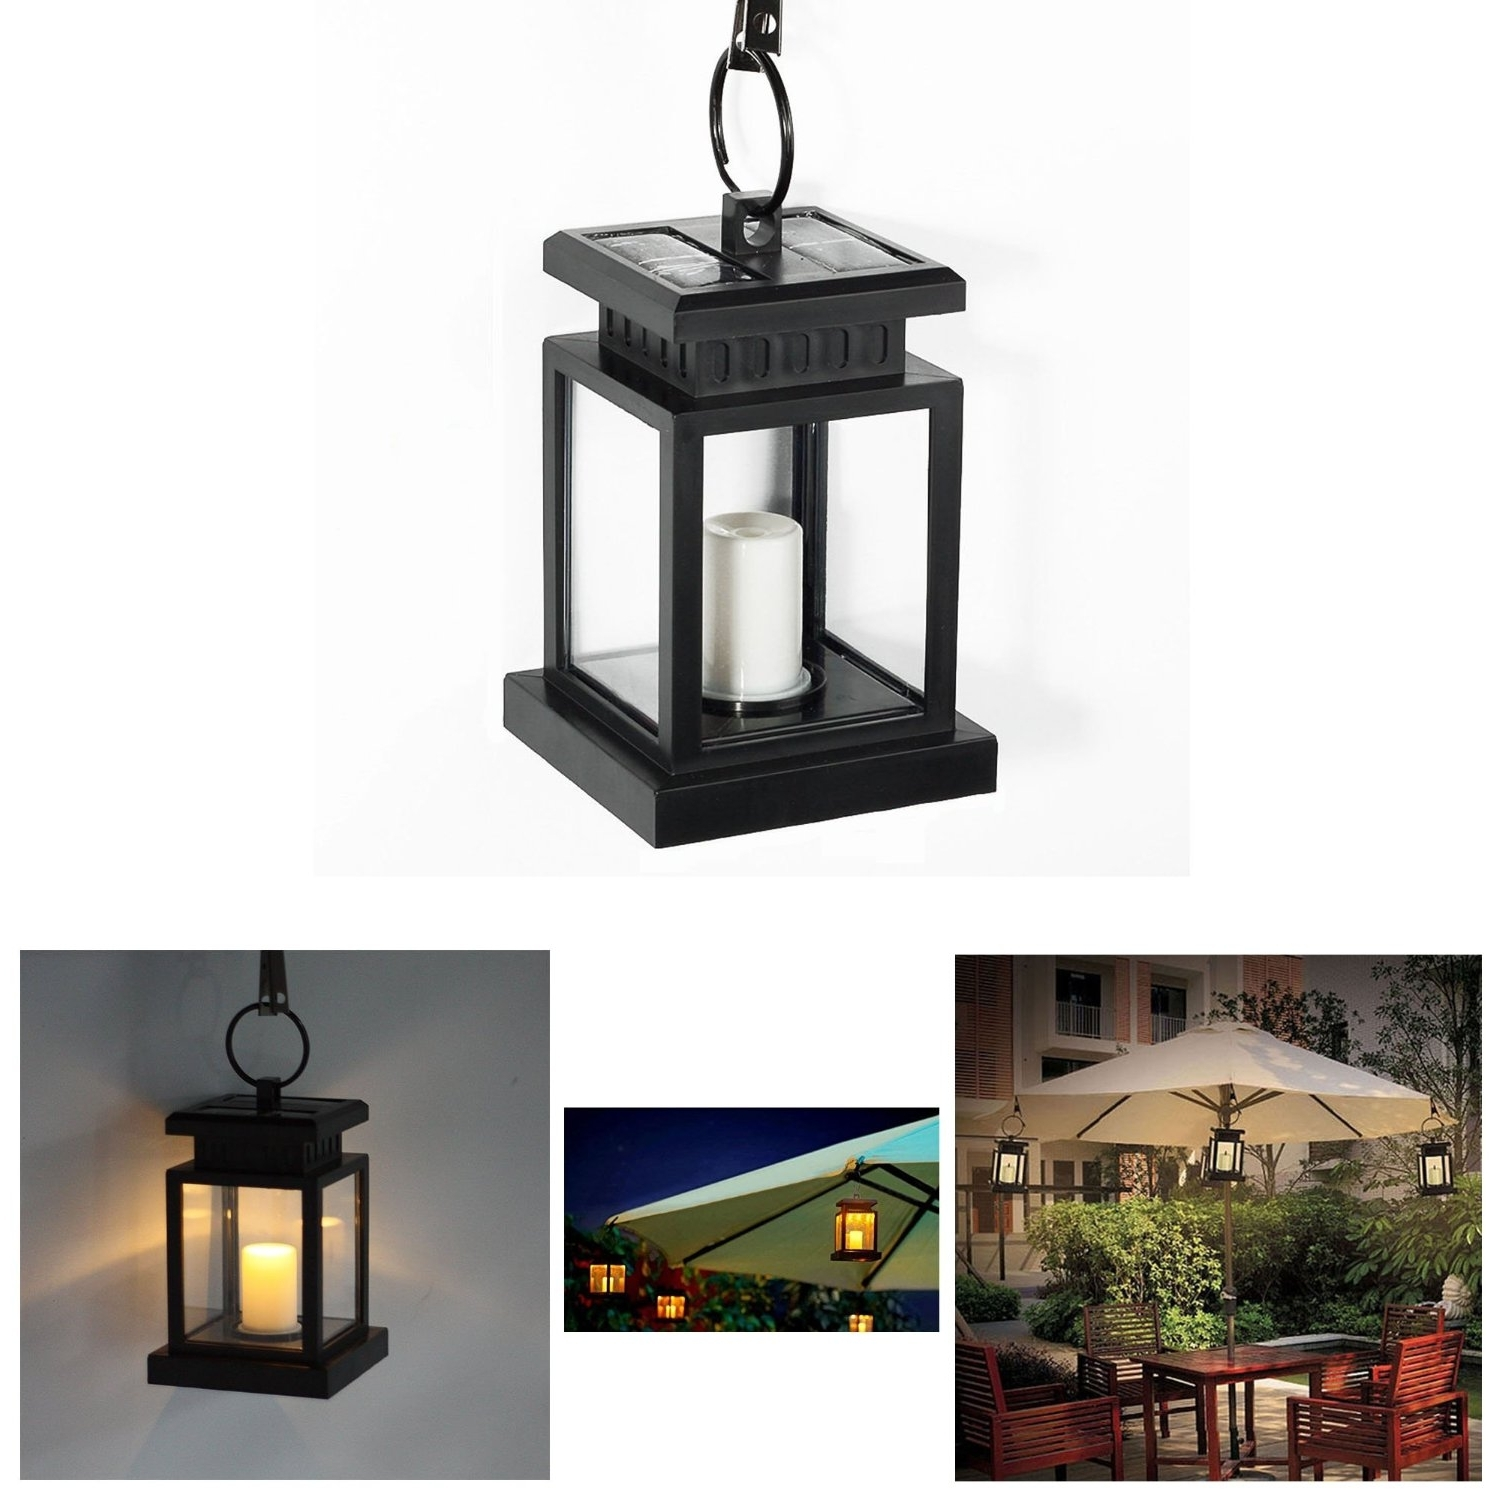 Most Recent Solar Powered Hanging Umbrella Lantern Candle Led Light With Clamp Pertaining To Outdoor Hanging Lanterns Candles (View 12 of 20)